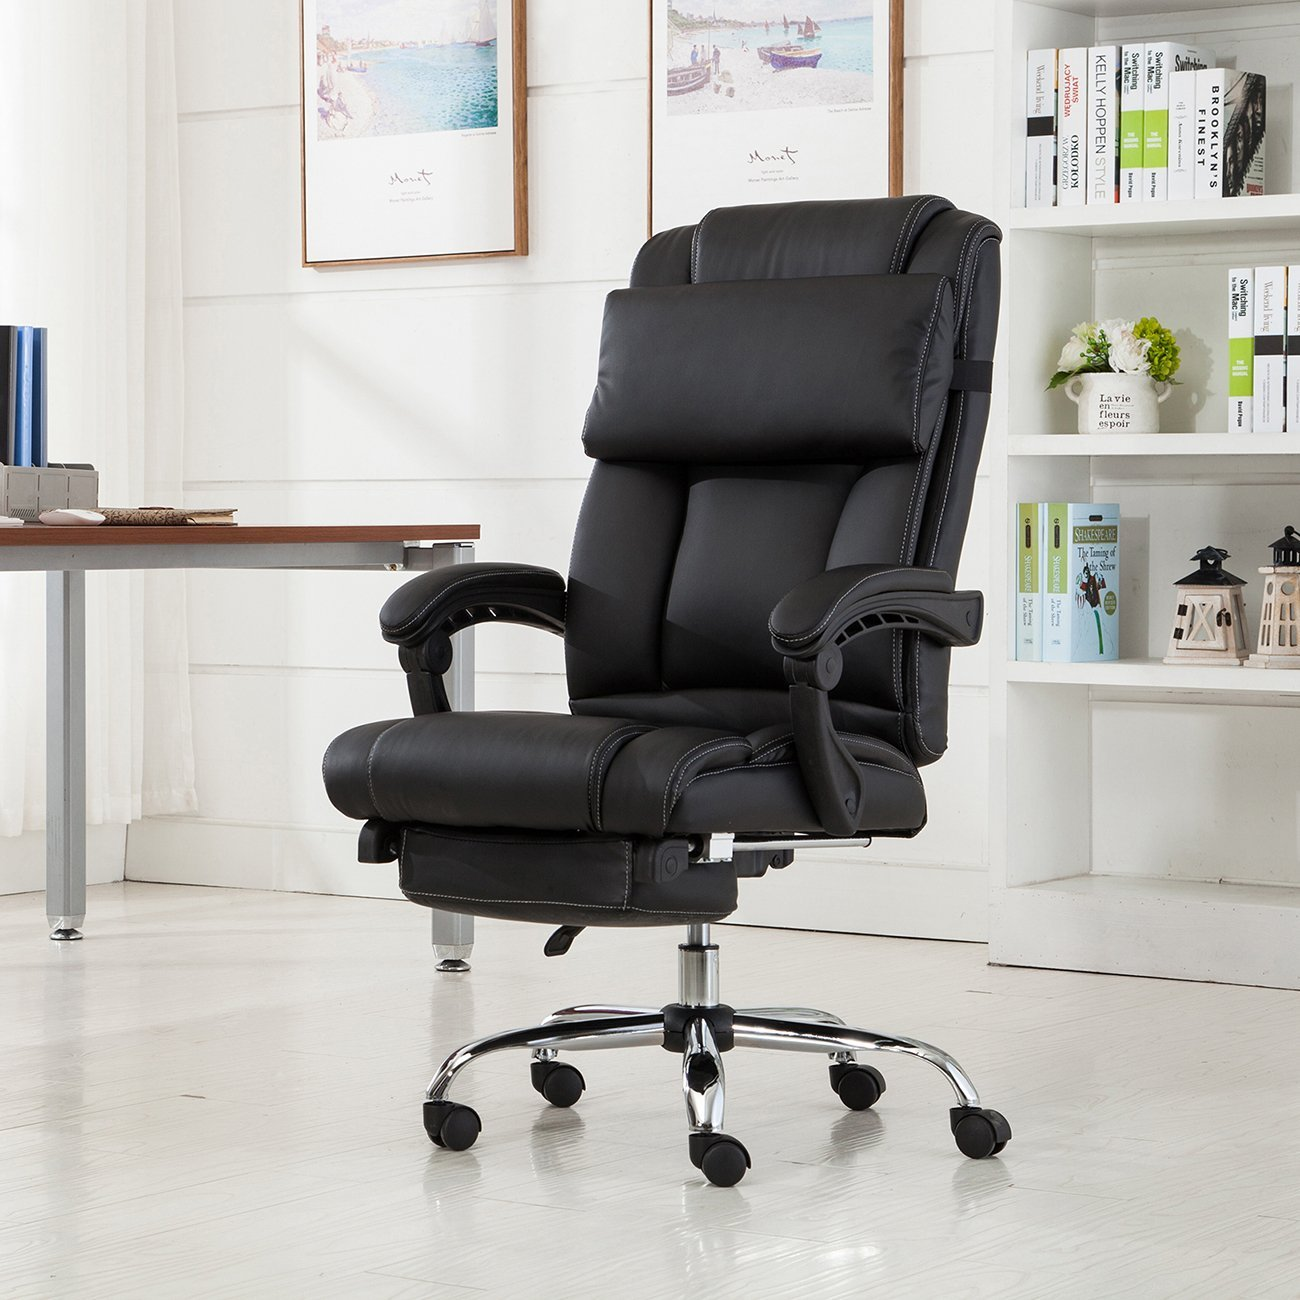 top 10 reclining office chairs reviewed 2018 guide